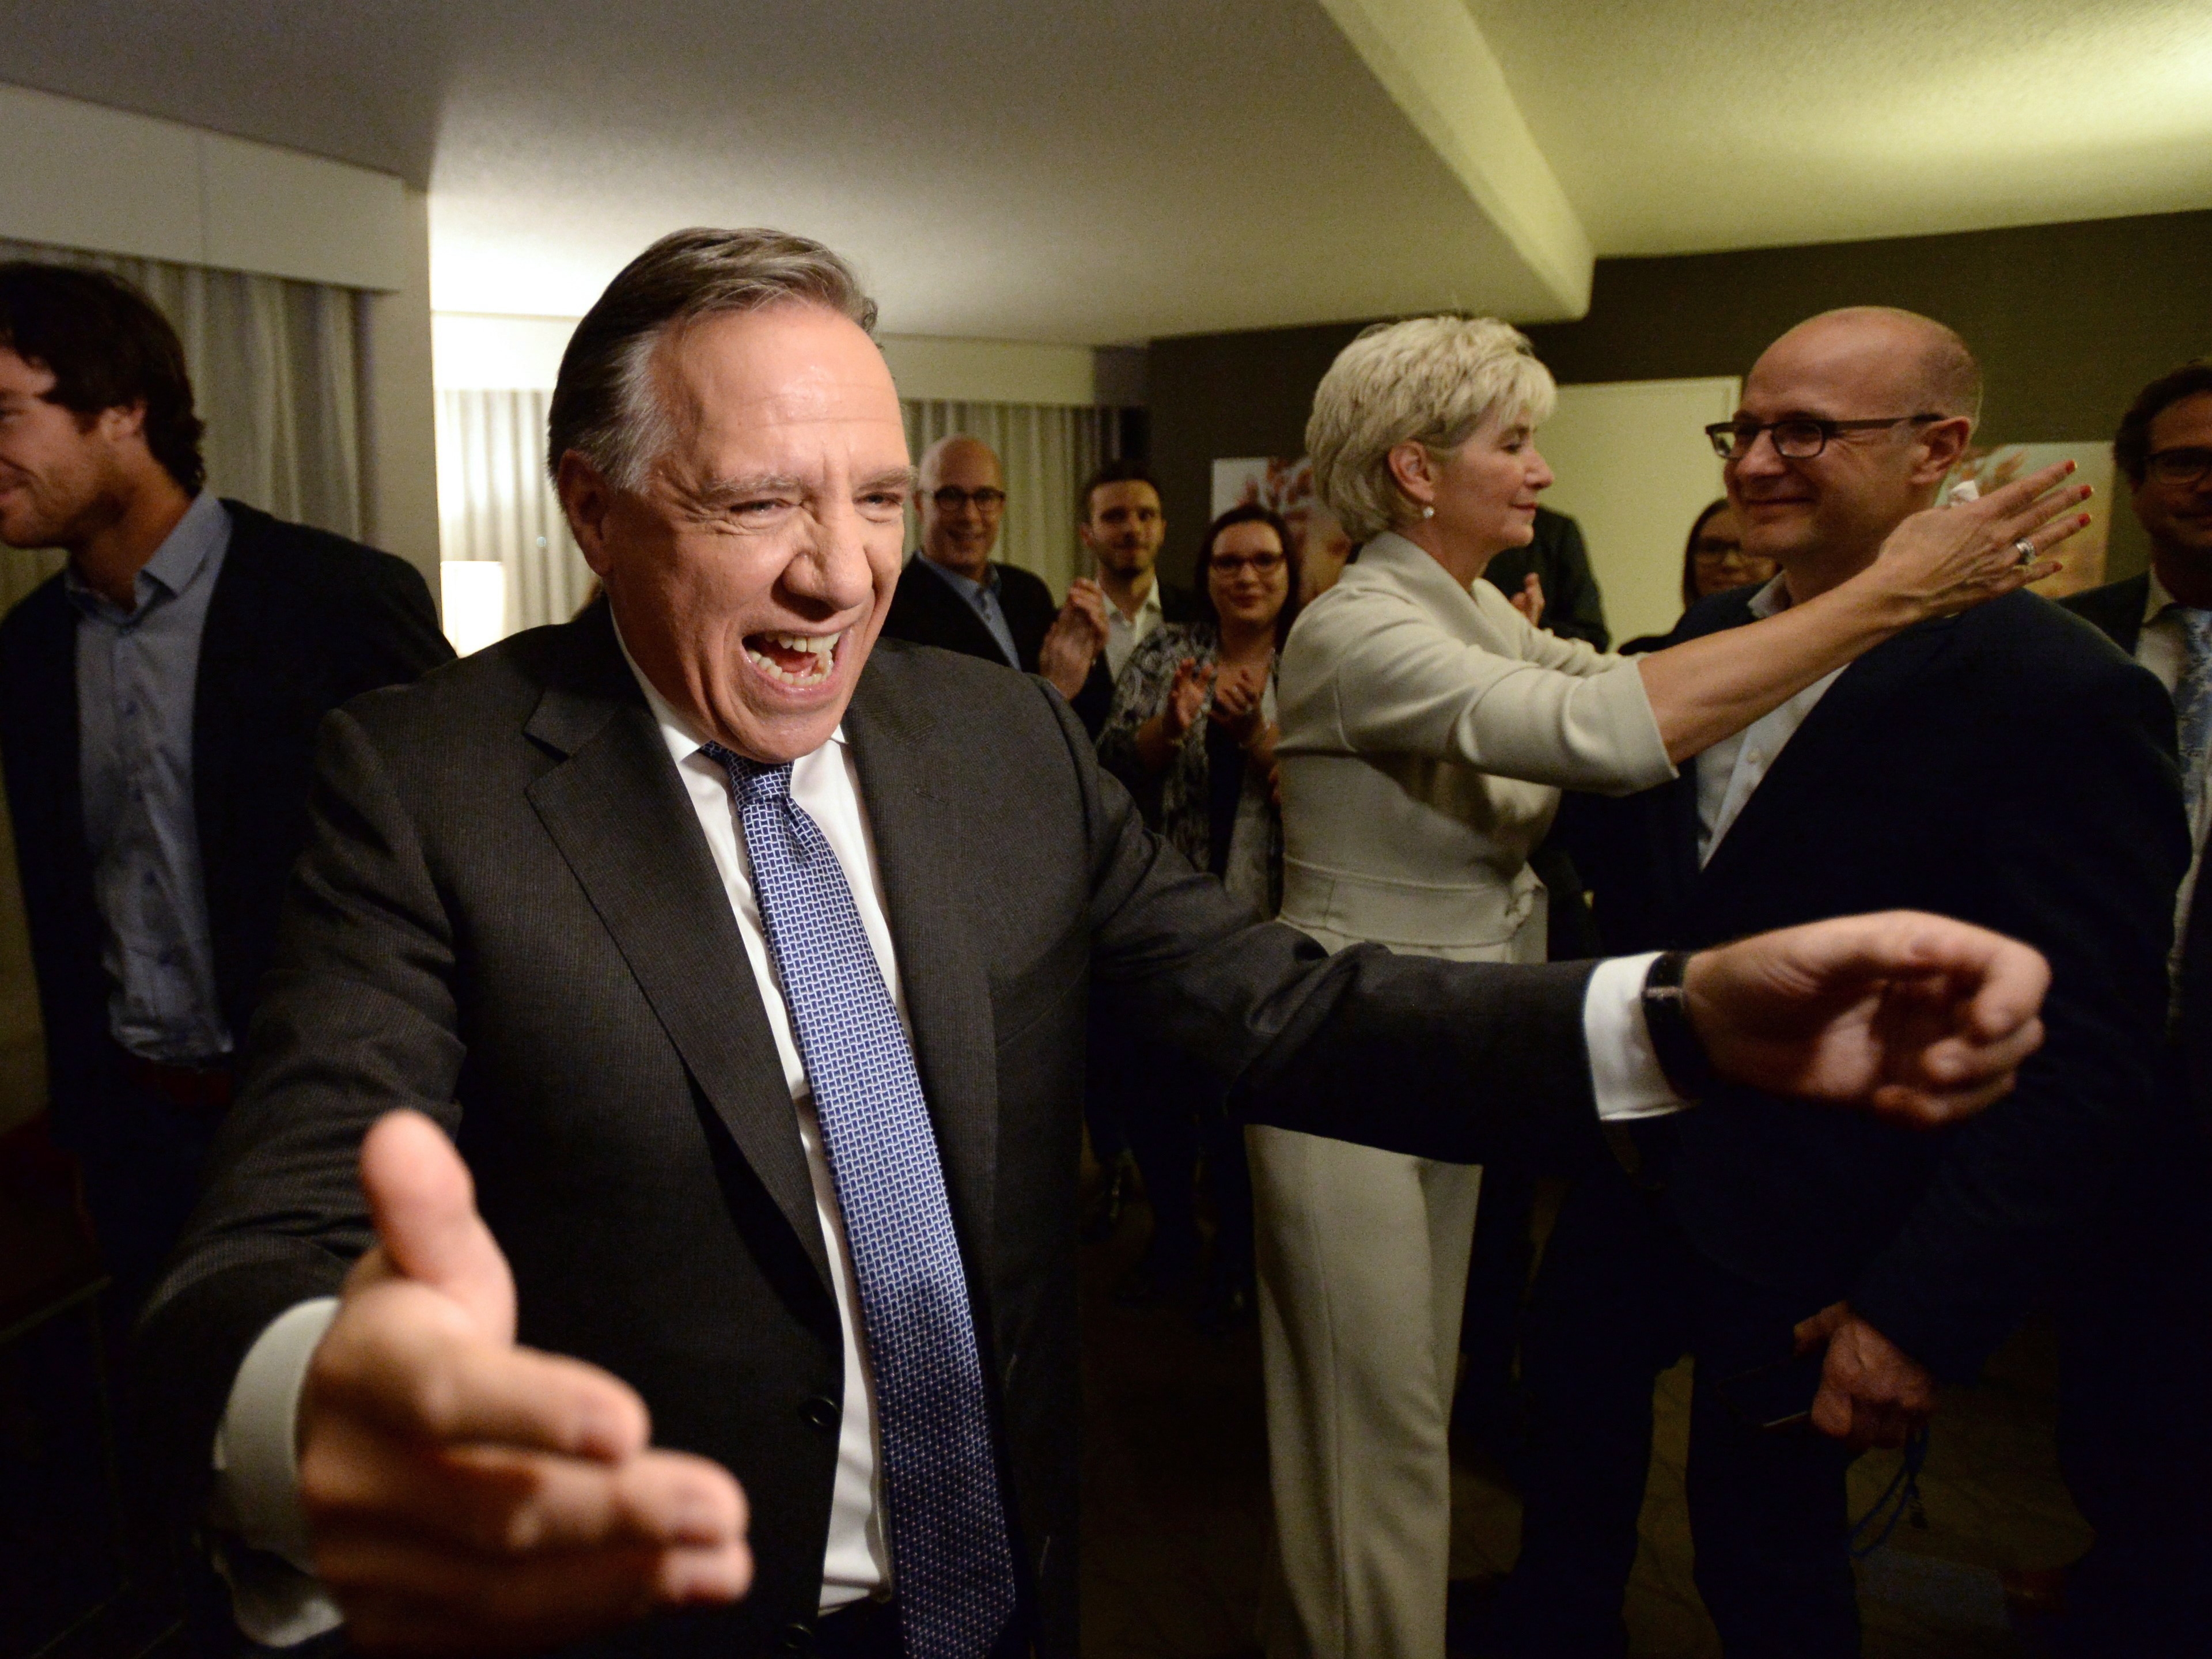 Five decades of two-party rule ends just ended in Quebec